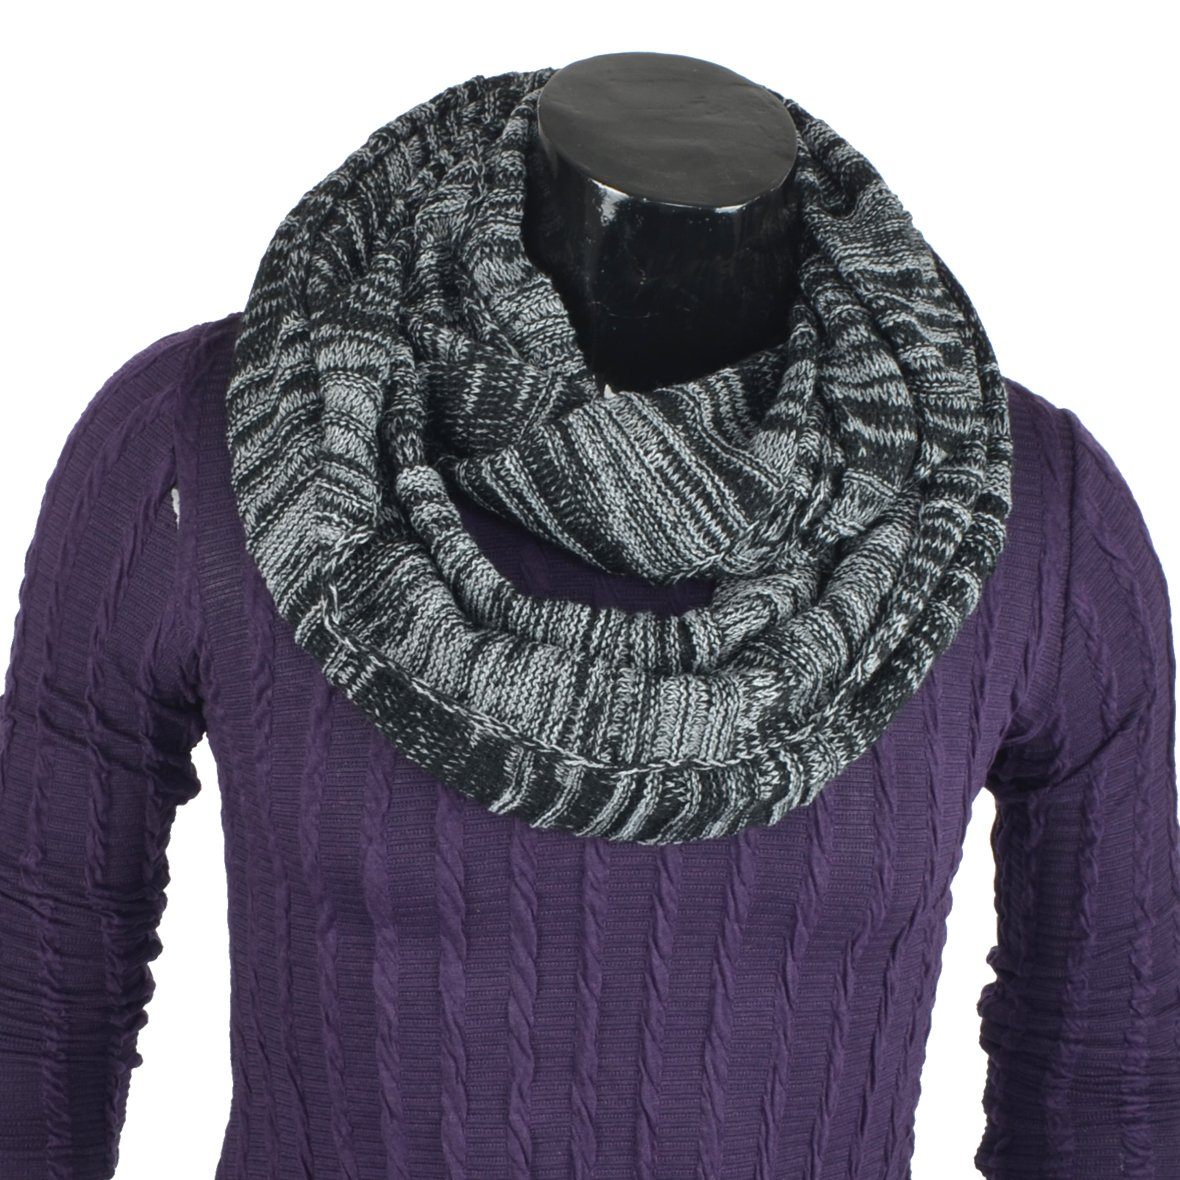 DGrey/&Black Mens Infinity Scarf Knit Soft Warm Thick Neck Gaiter Winter Scarves